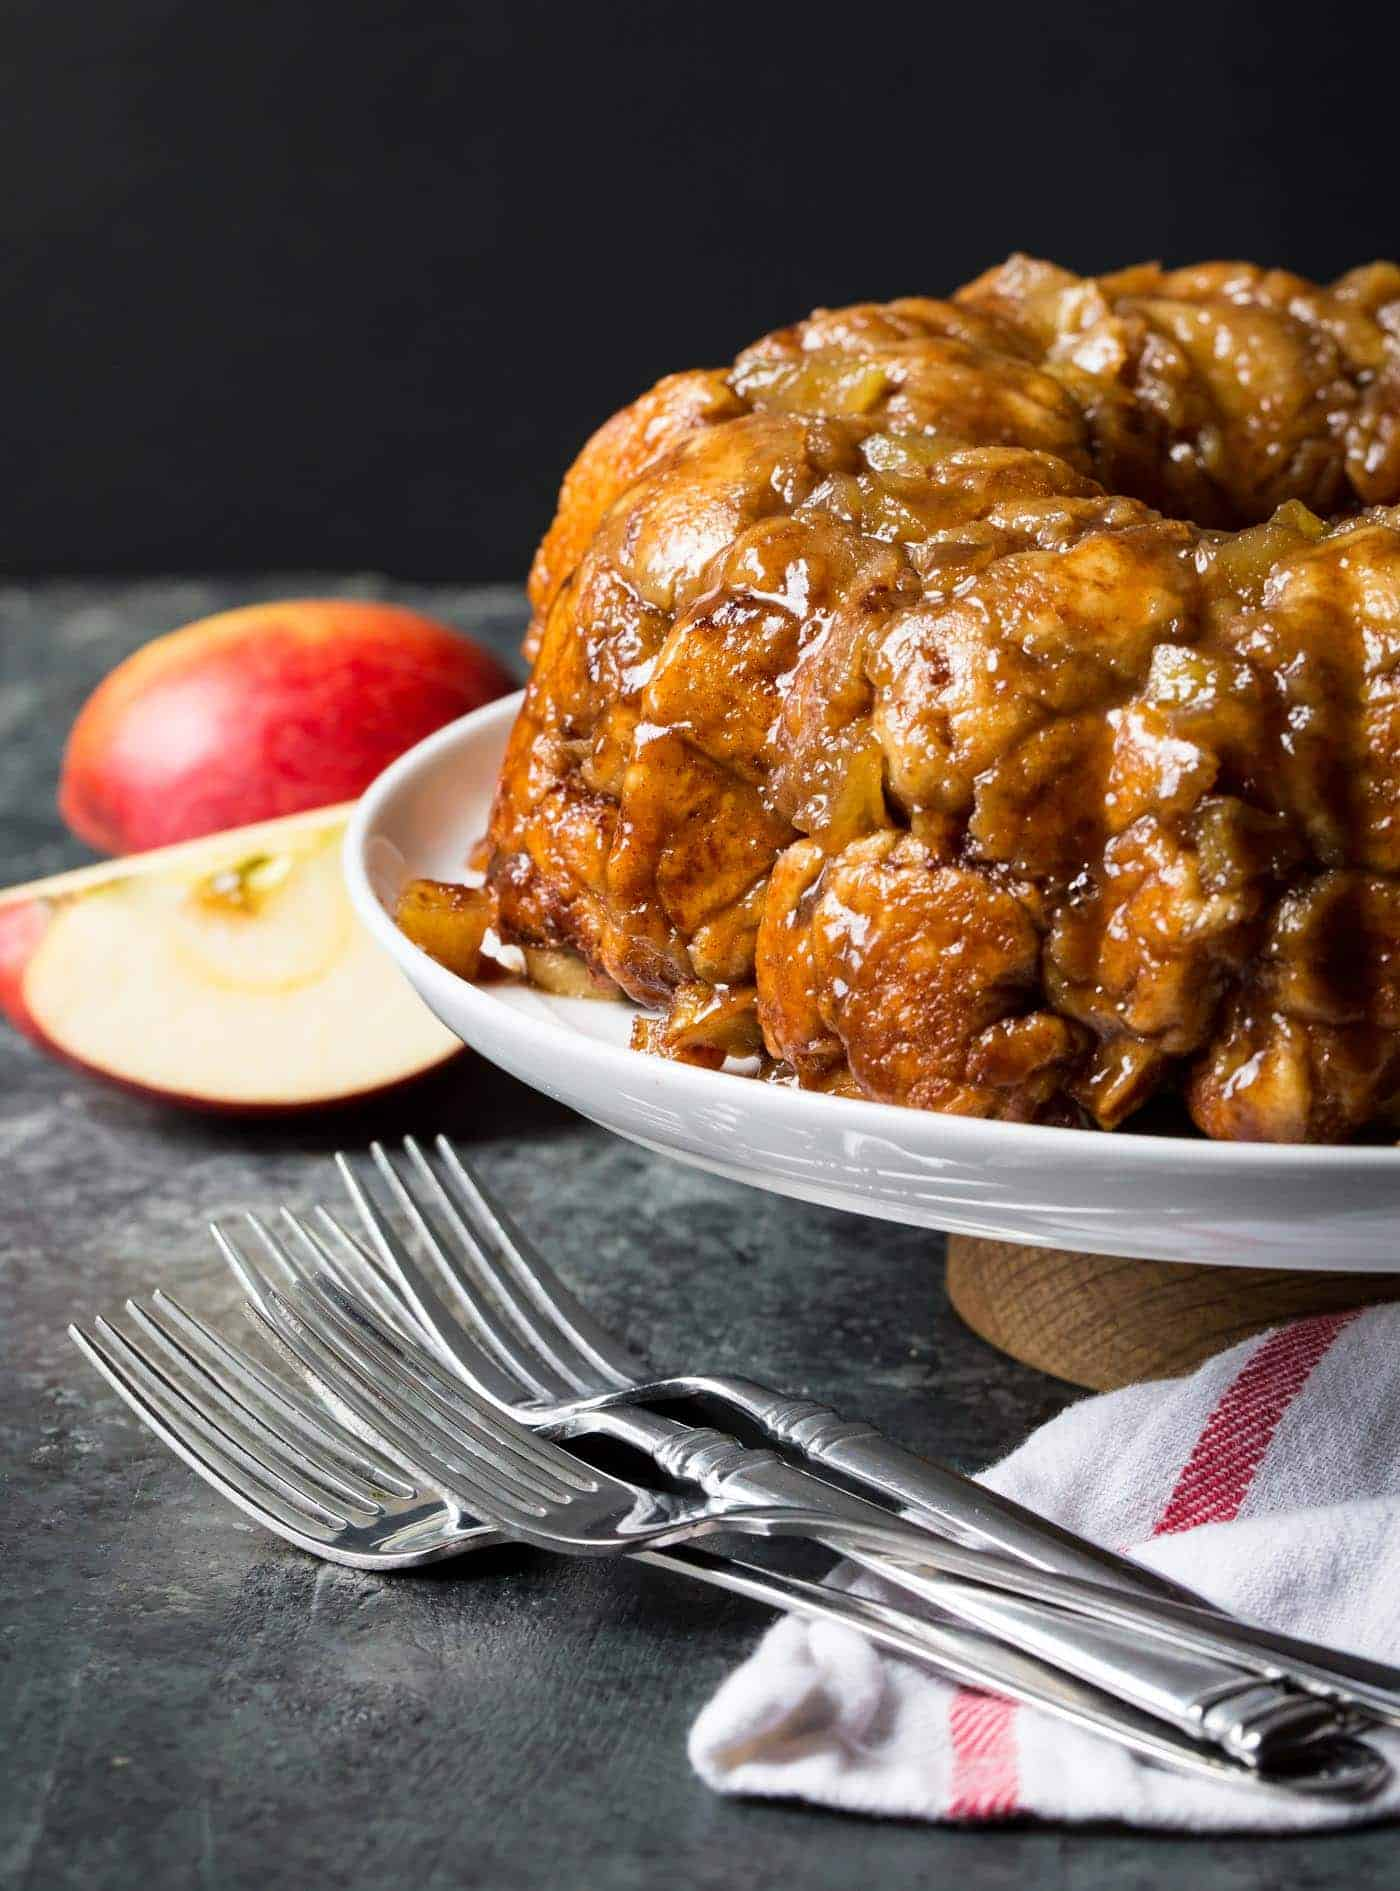 Wow your guests with this irresistible Gluten-Free Caramel Apple Monkey Bread at your next brunch!